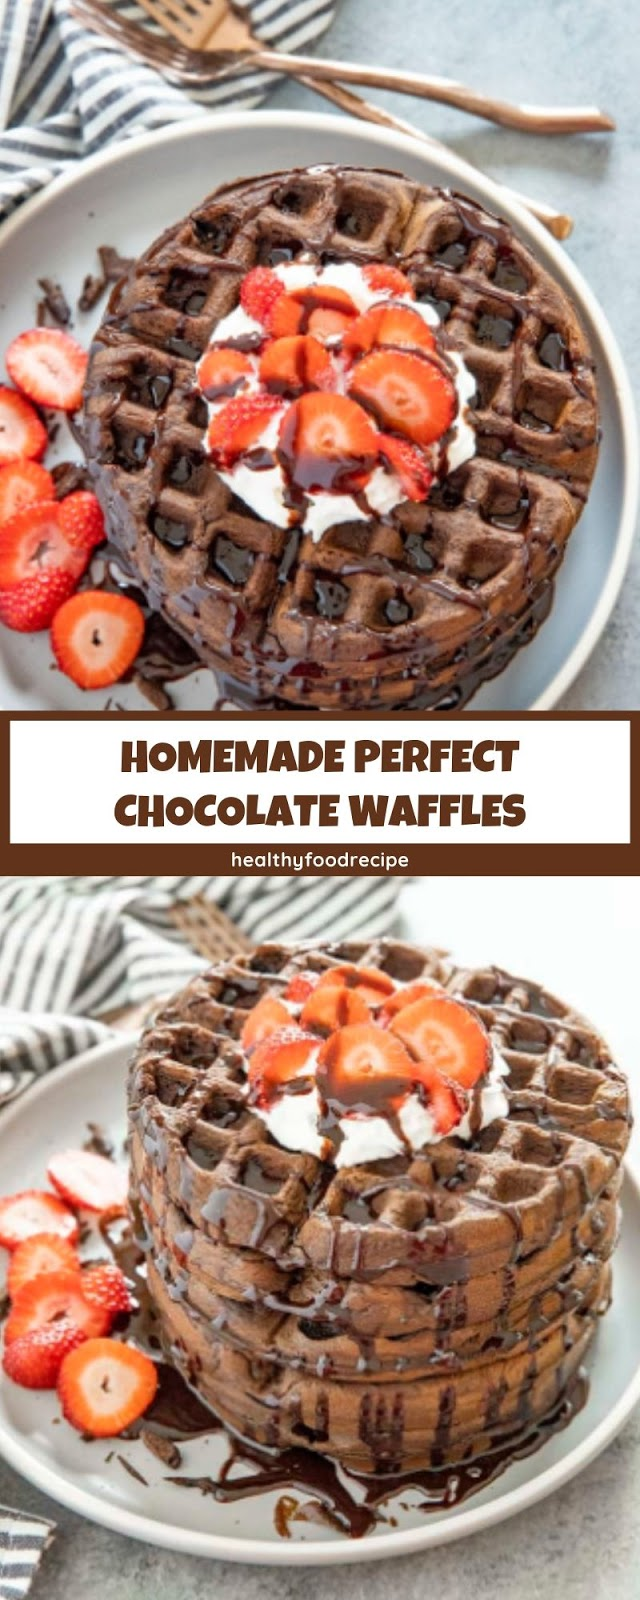 HOMEMADE PERFECT CHOCOLATE WAFFLES